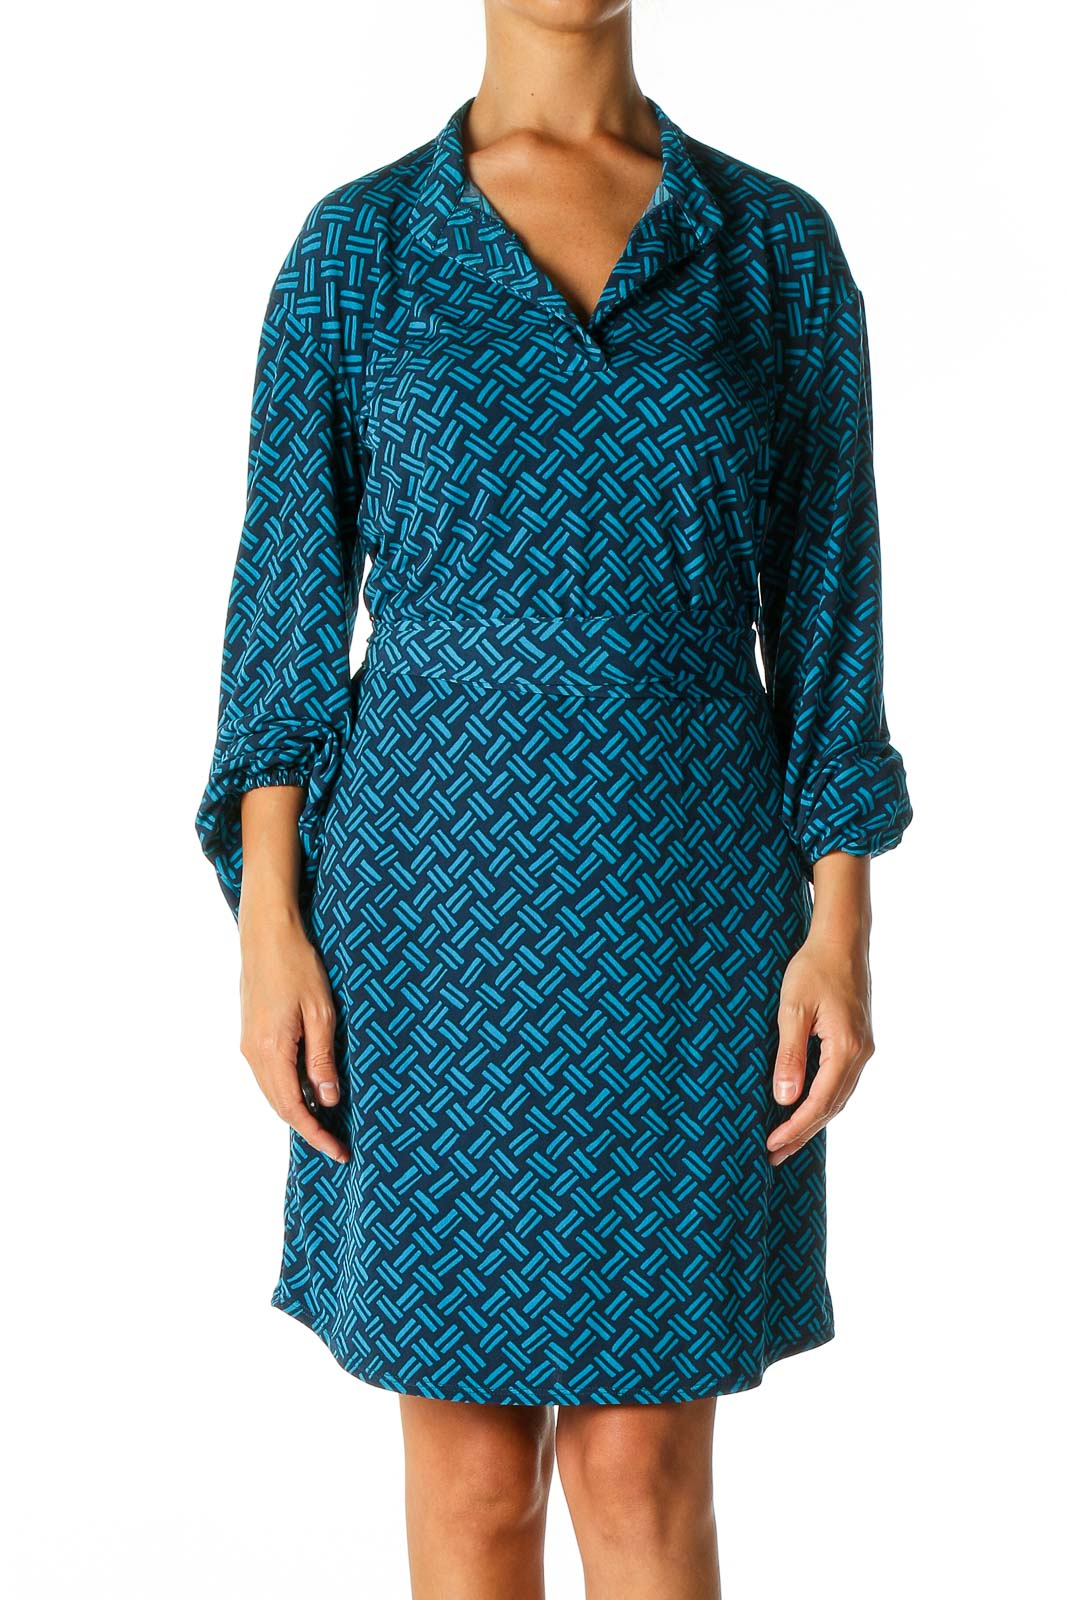 Blue Chevron Holiday Fit & Flare Dress Front